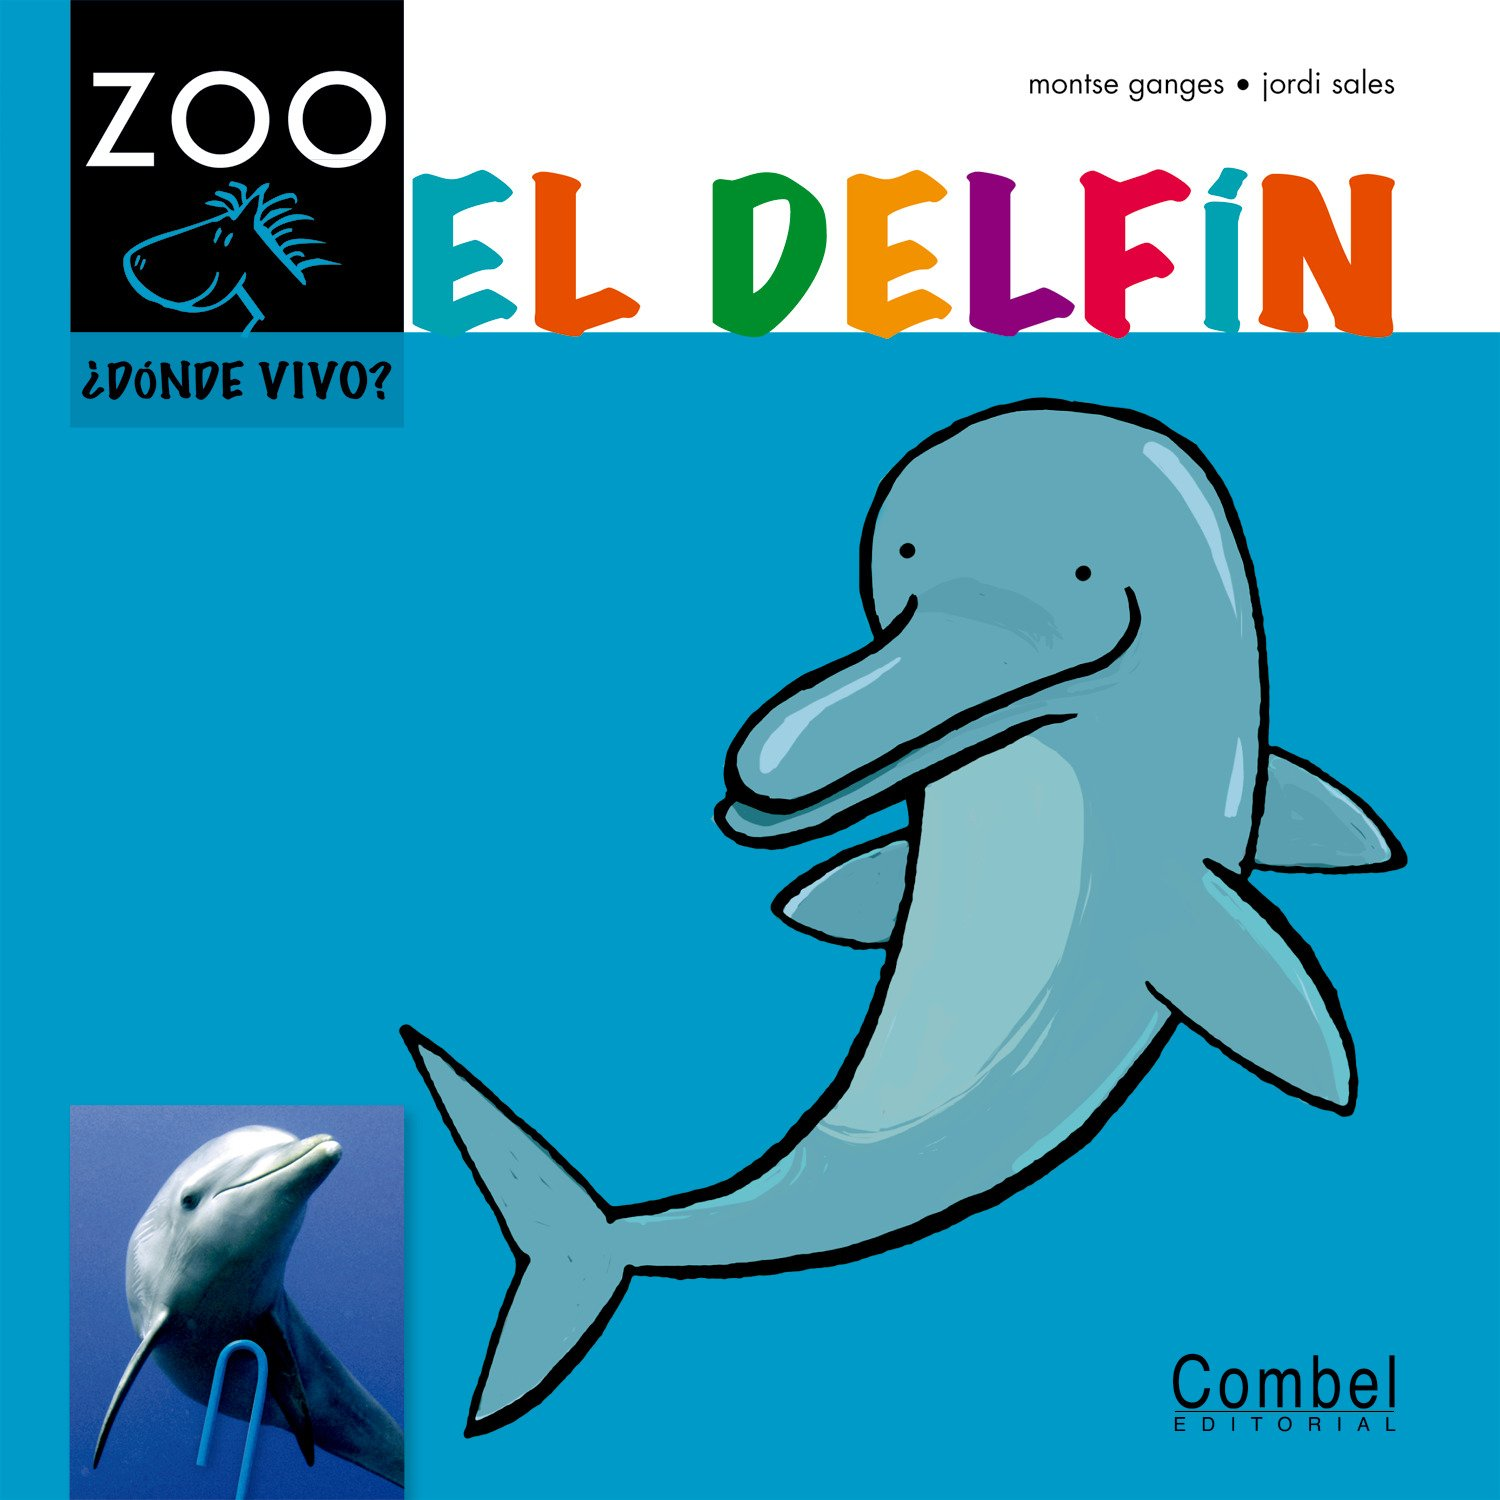 El delfín (Caballo alado ZOO) (Spanish Edition) (Spanish) Hardcover – May 1, 2012